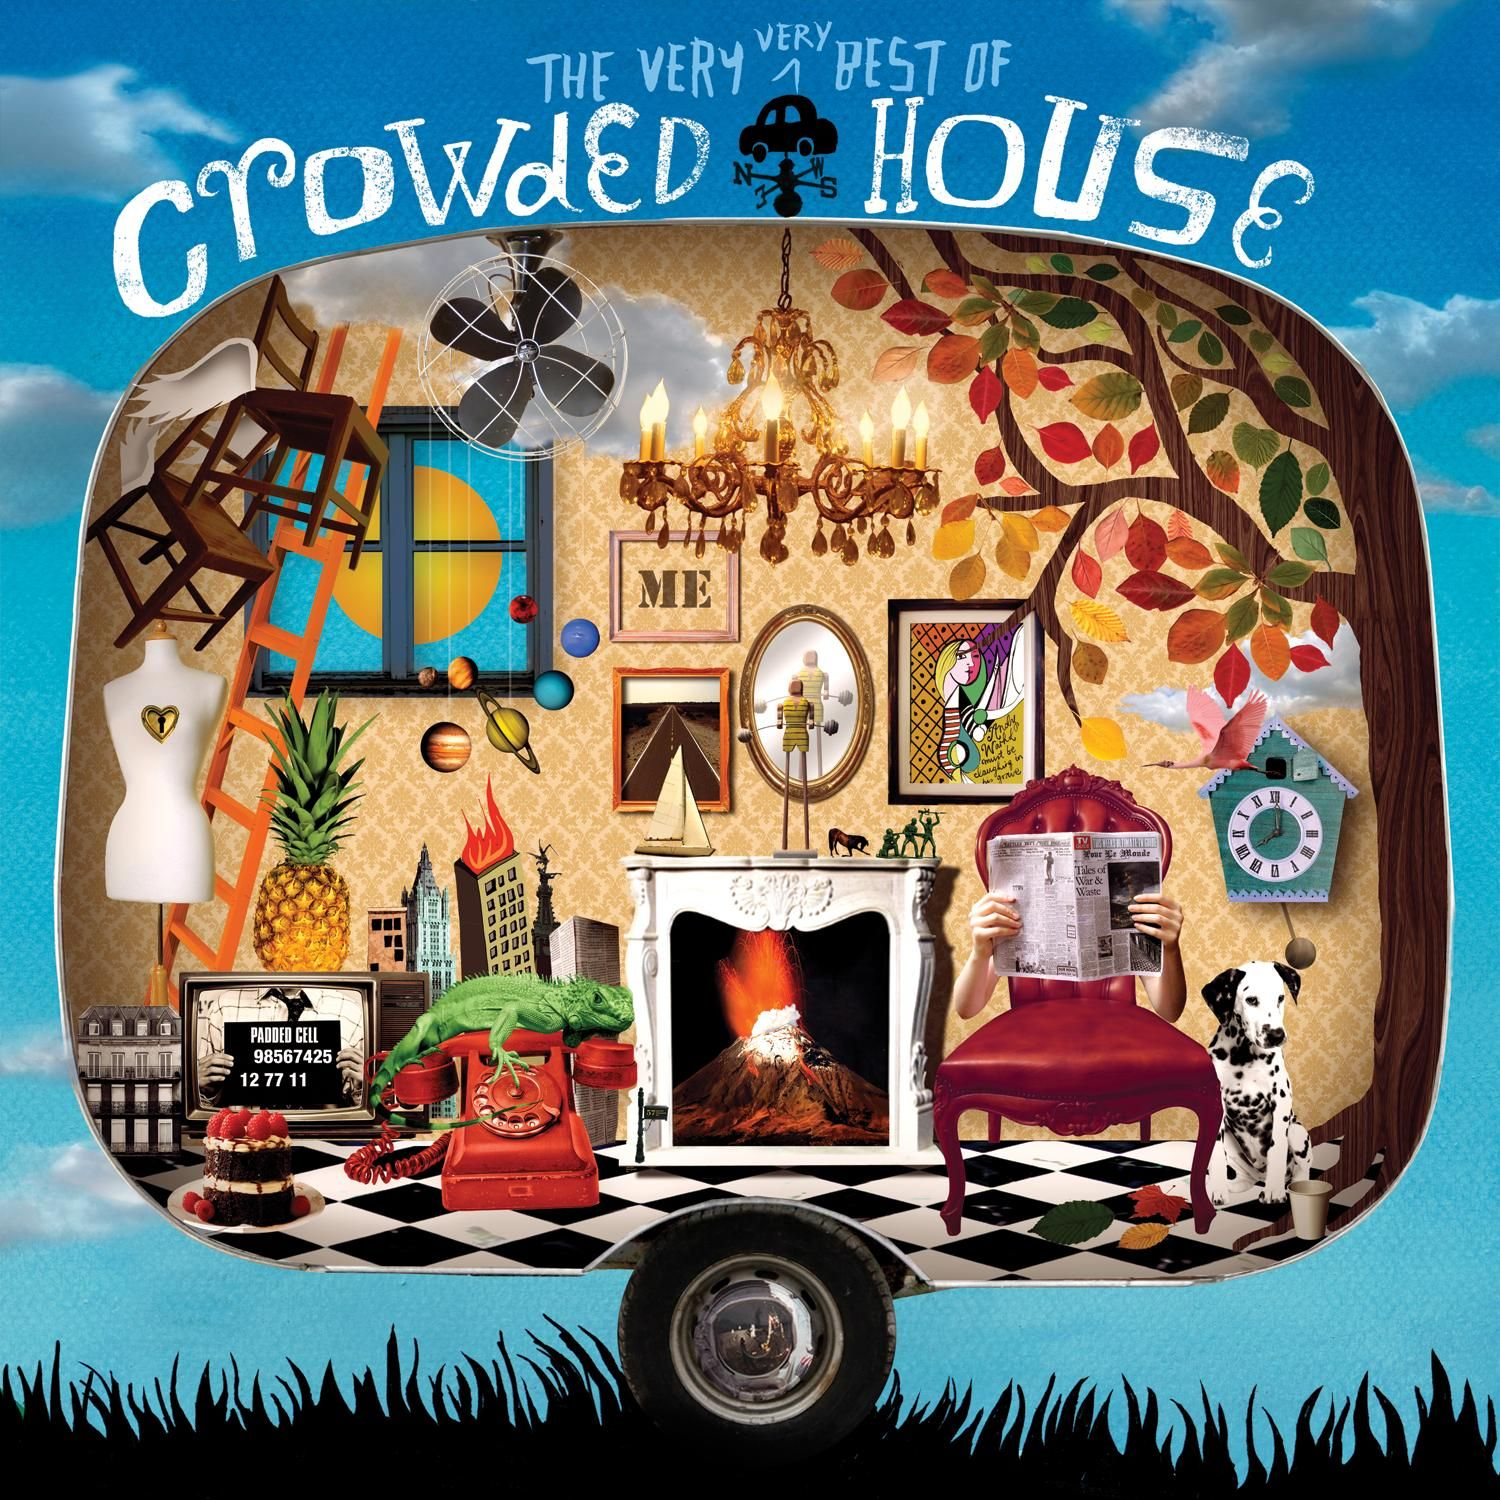 Very Best Of Crowded House Crowded House